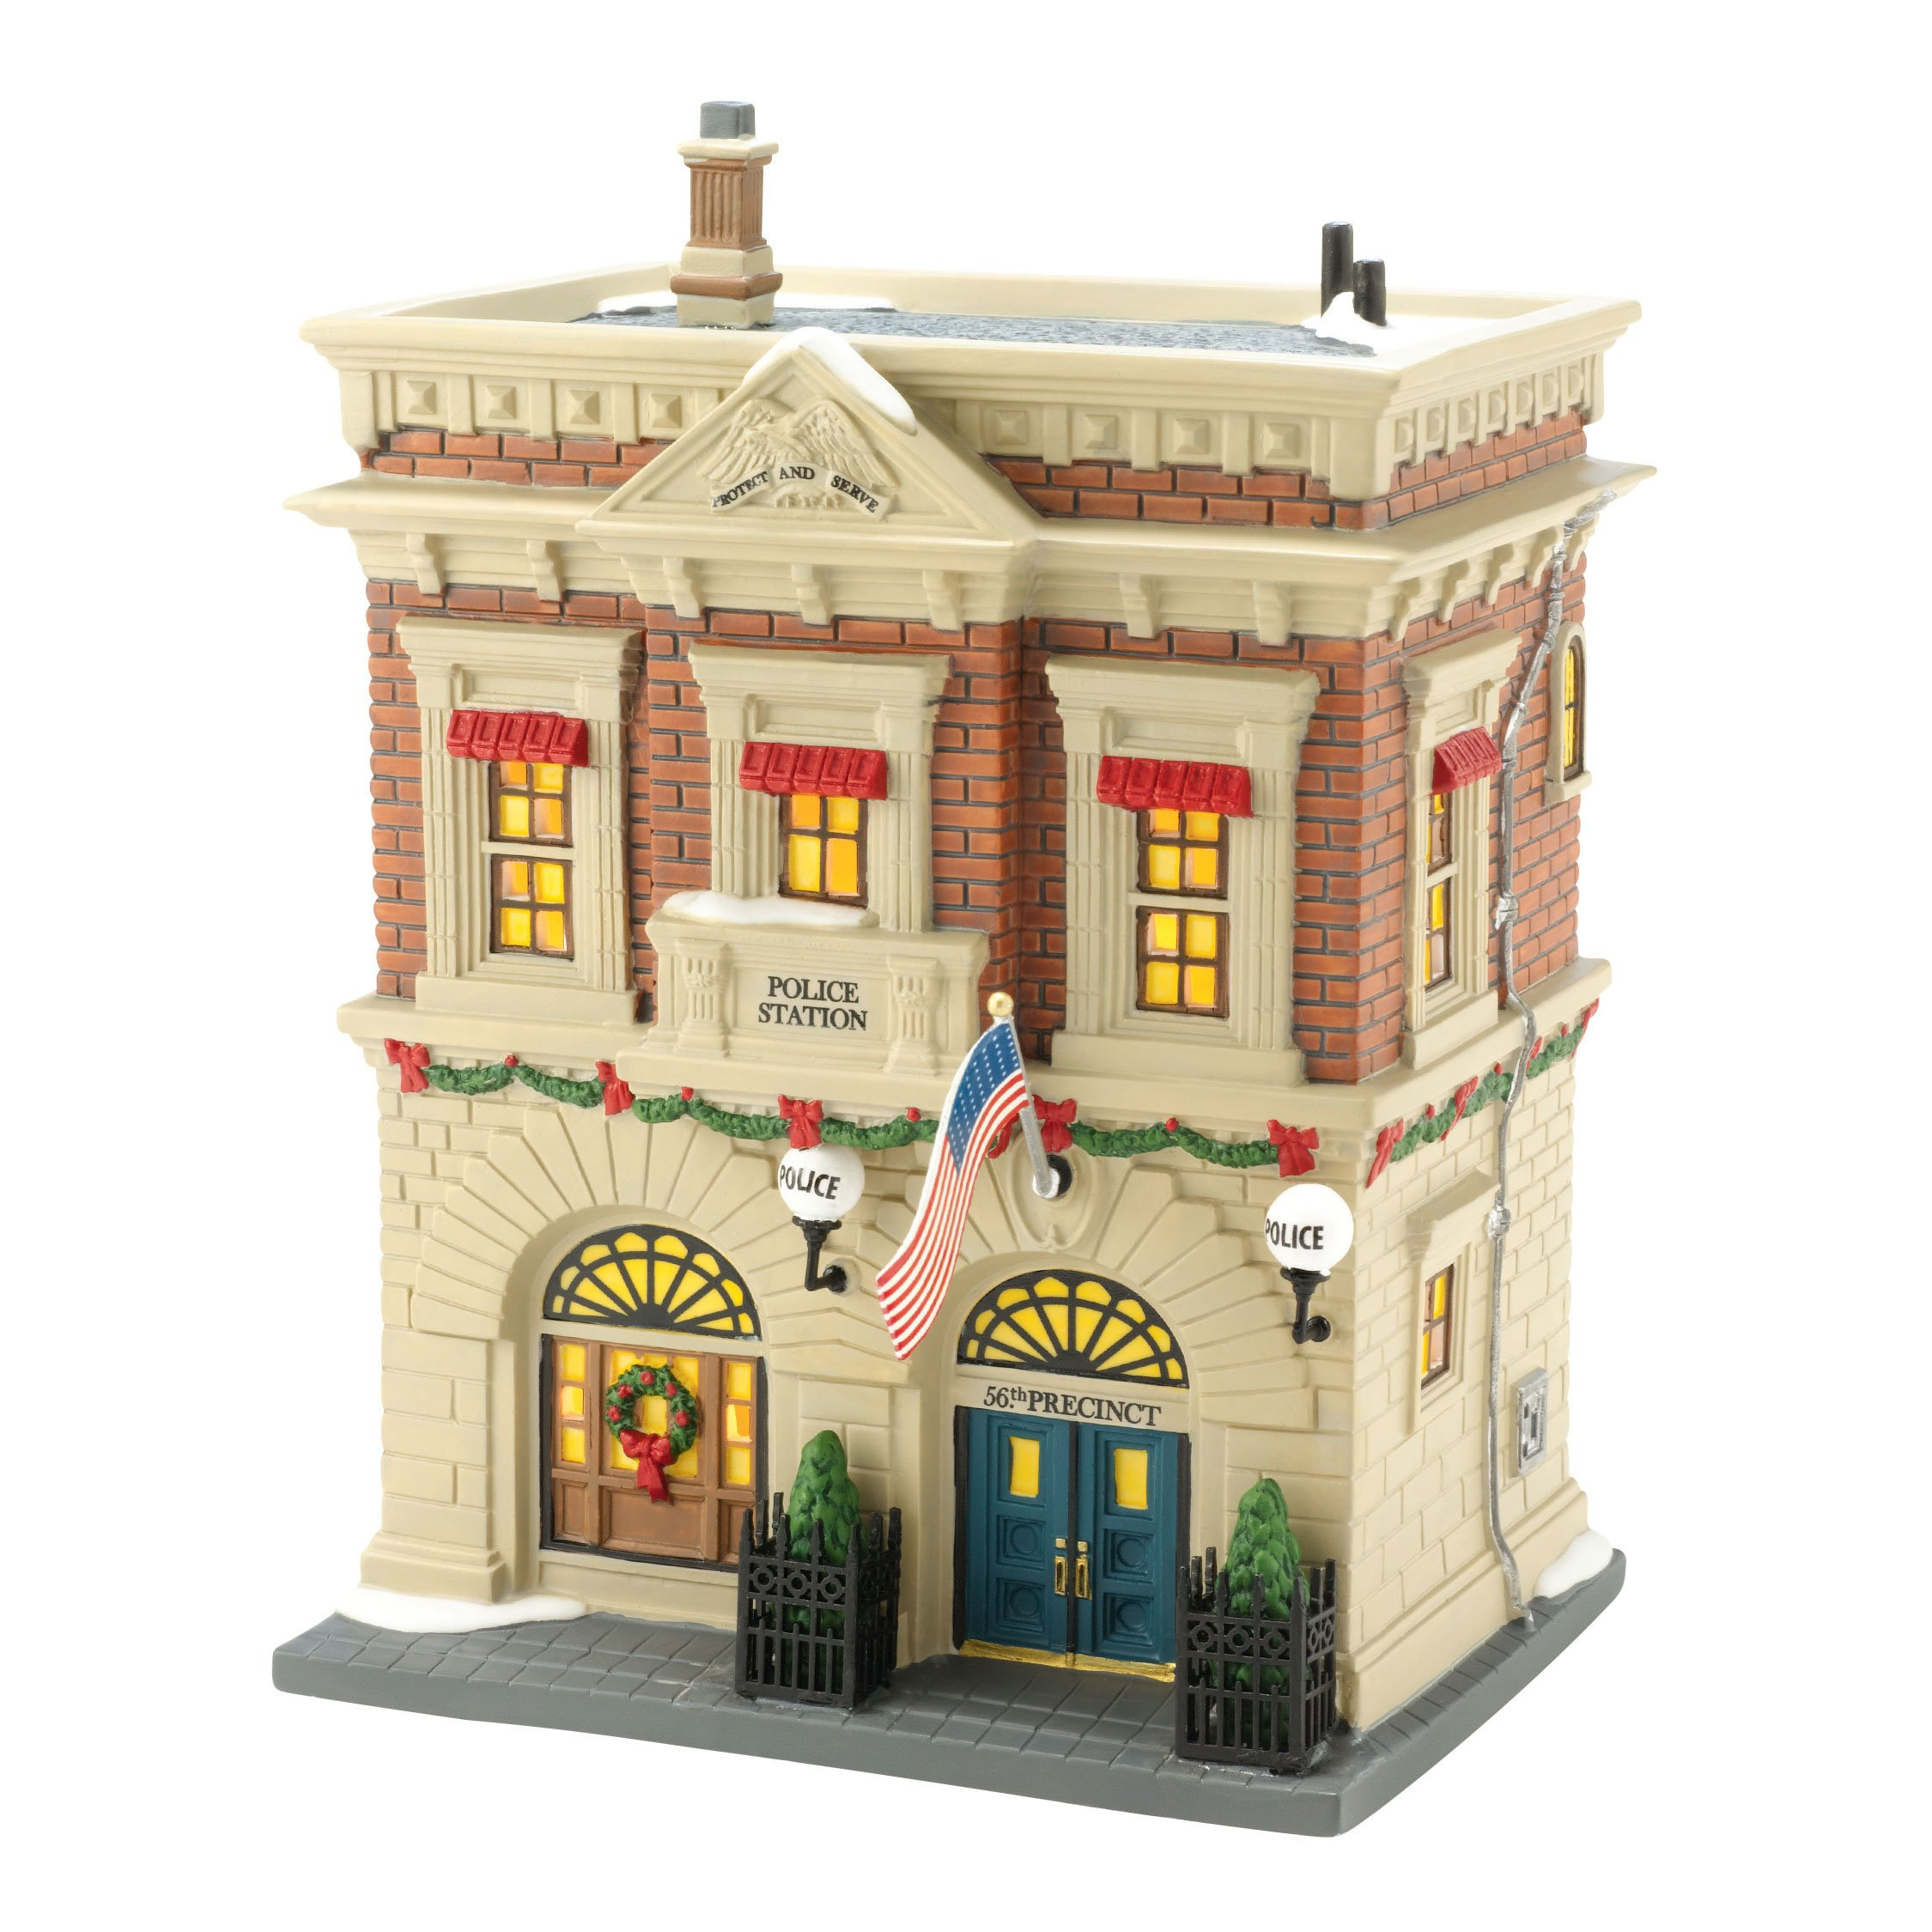 Department 56 Christmas in the City Village Precinct 56 Police Station Lit House, 8.27 inch by Department 56